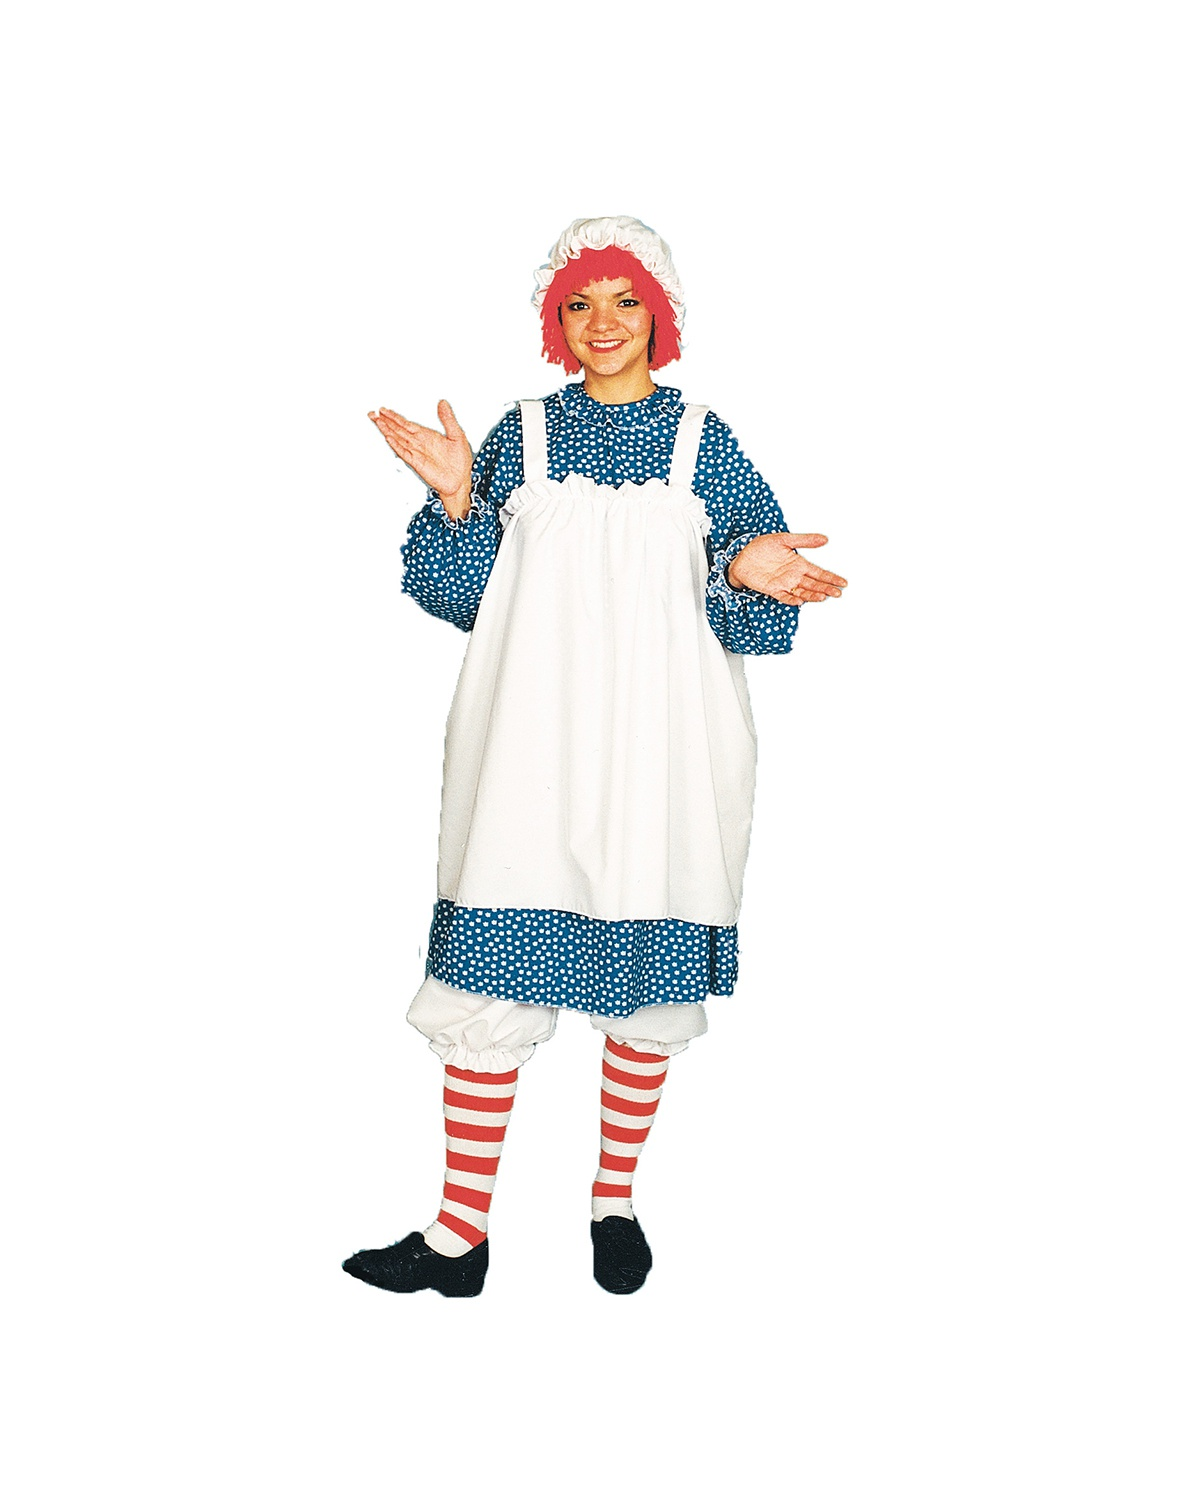 'Halloween Costumes 12110 Raggedy Ann Adult'